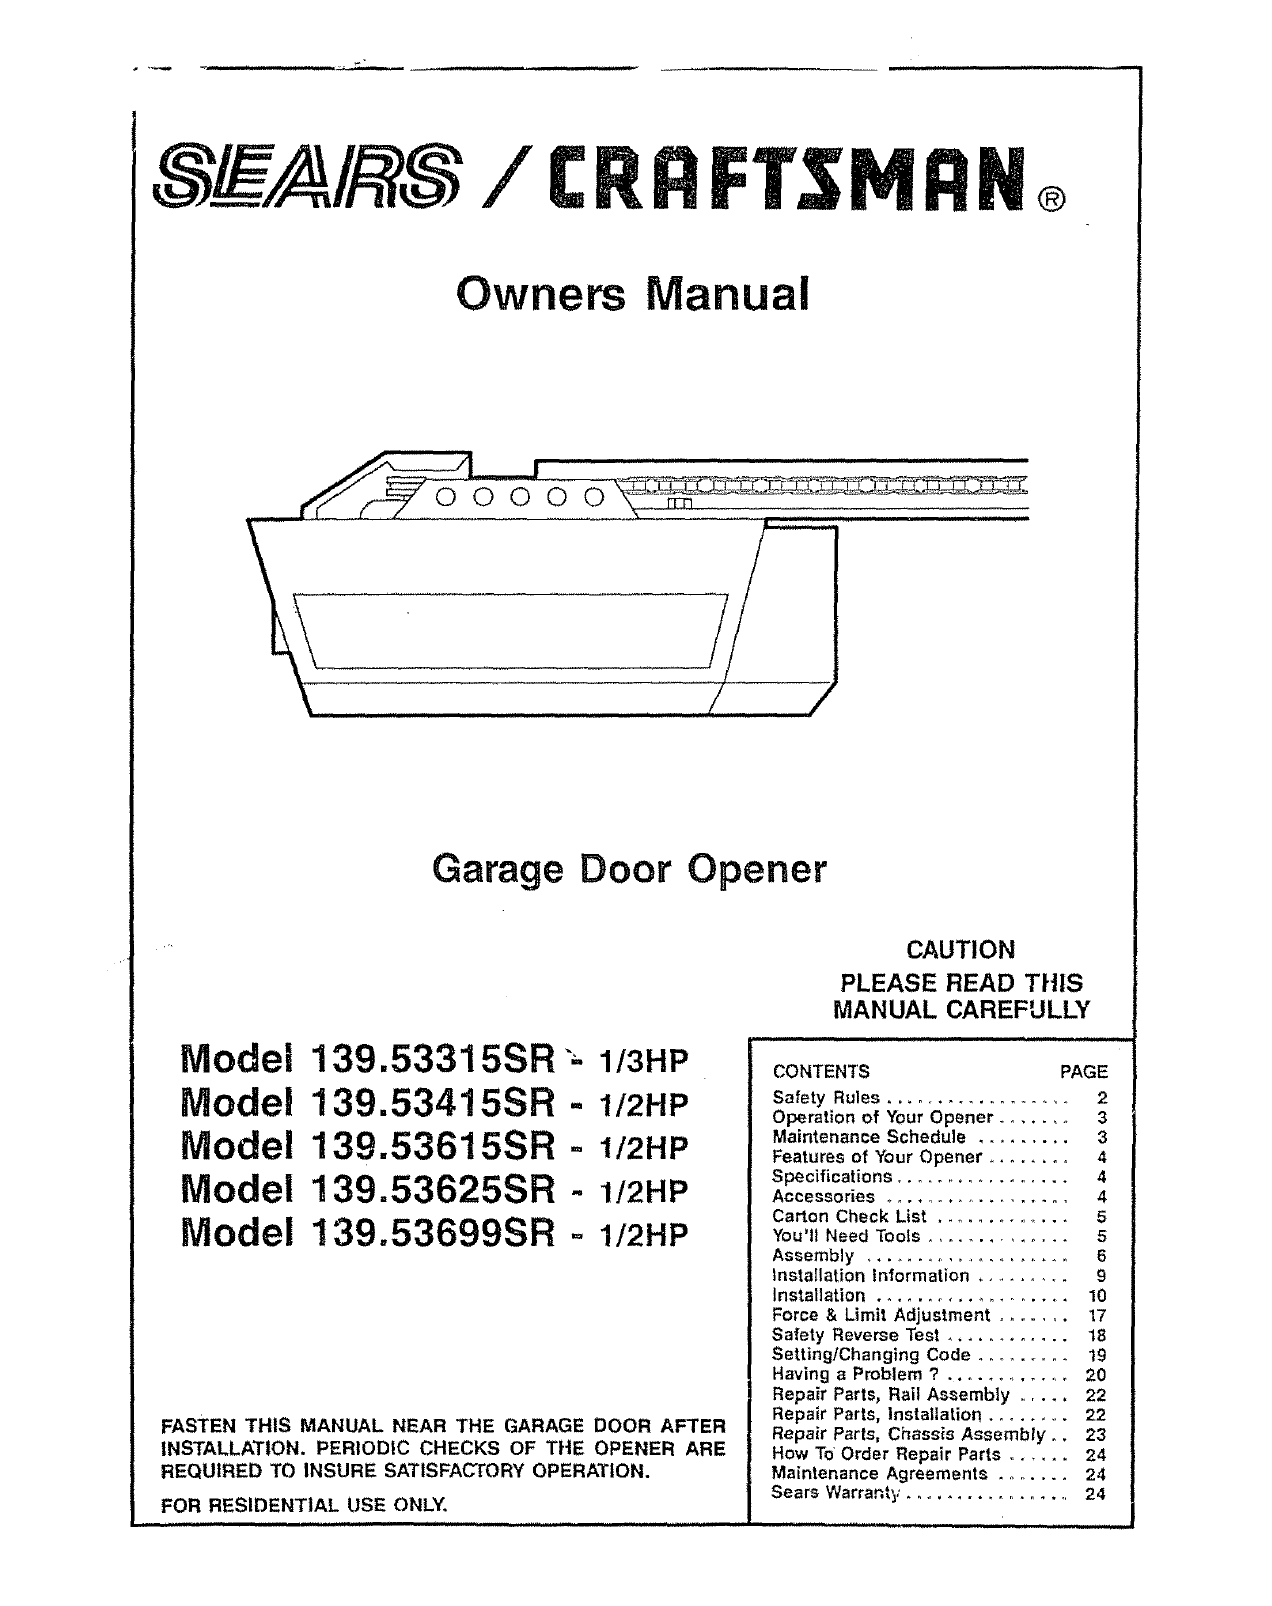 Unique Wiring Diagram Garage Door Motor Diagram Diagramsample Diagramtemplate Wiringdiag Garage Doors Craftsman Garage Door Opener Garage Door Opener Motor